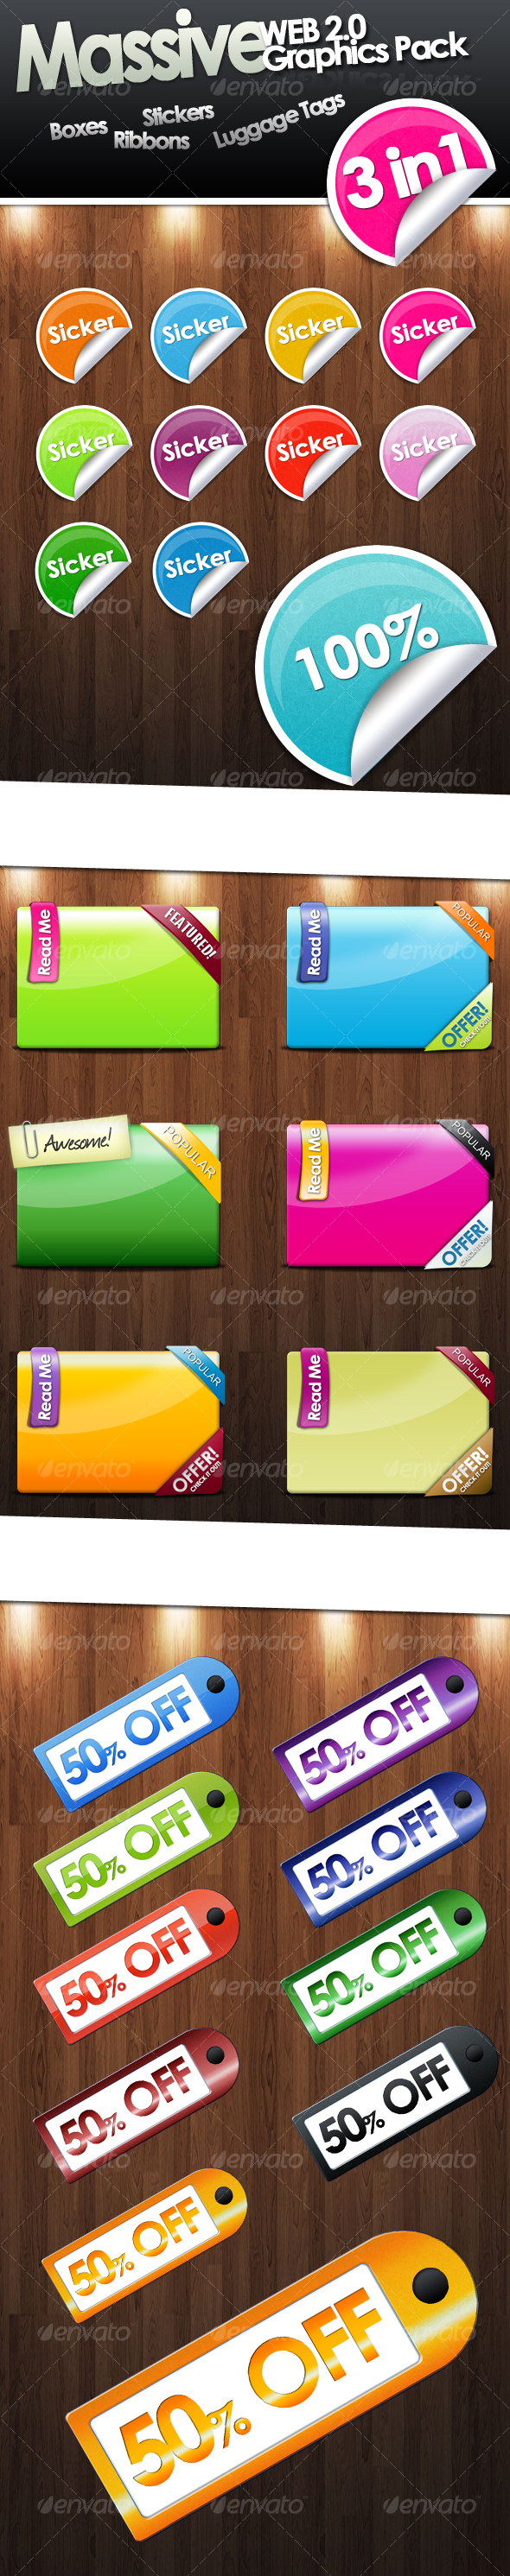 GraphicRiver Massive Web 2.0 Asset Pack Stickers Ribbons etc 103479